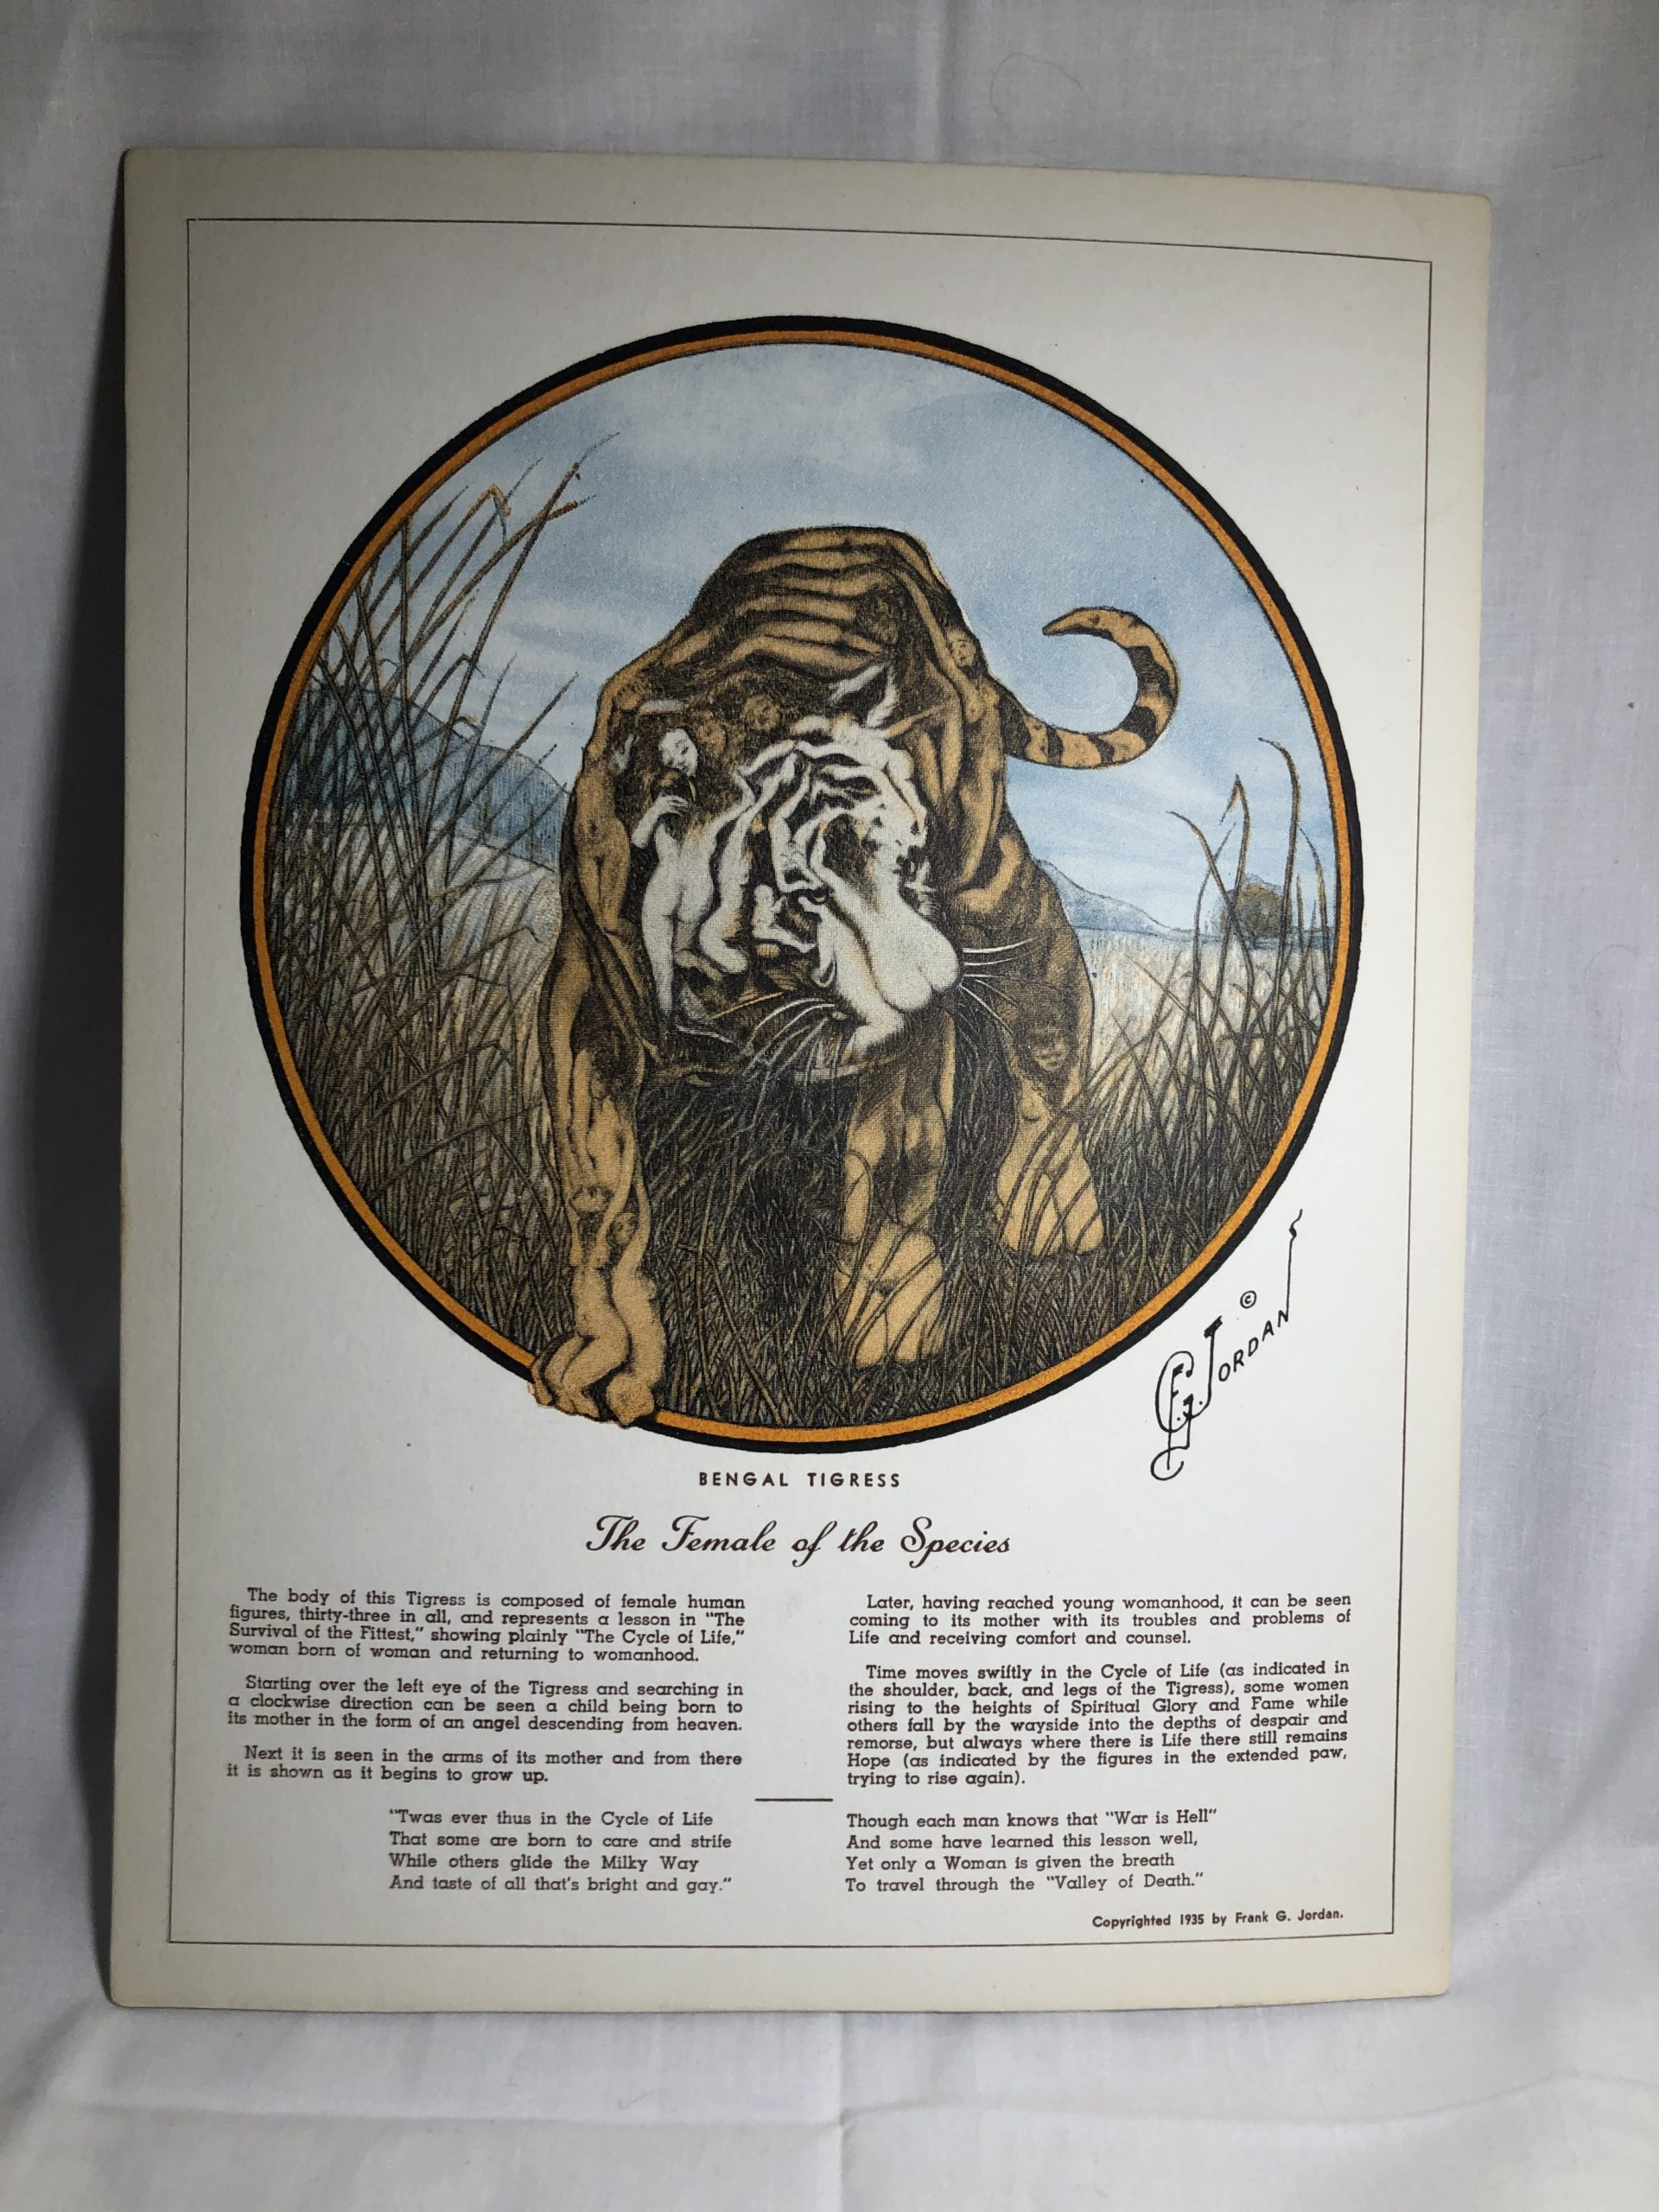 F.G. Jordan Print: Bengal Tigress, The Female of the Species (Women hidden within tiger)